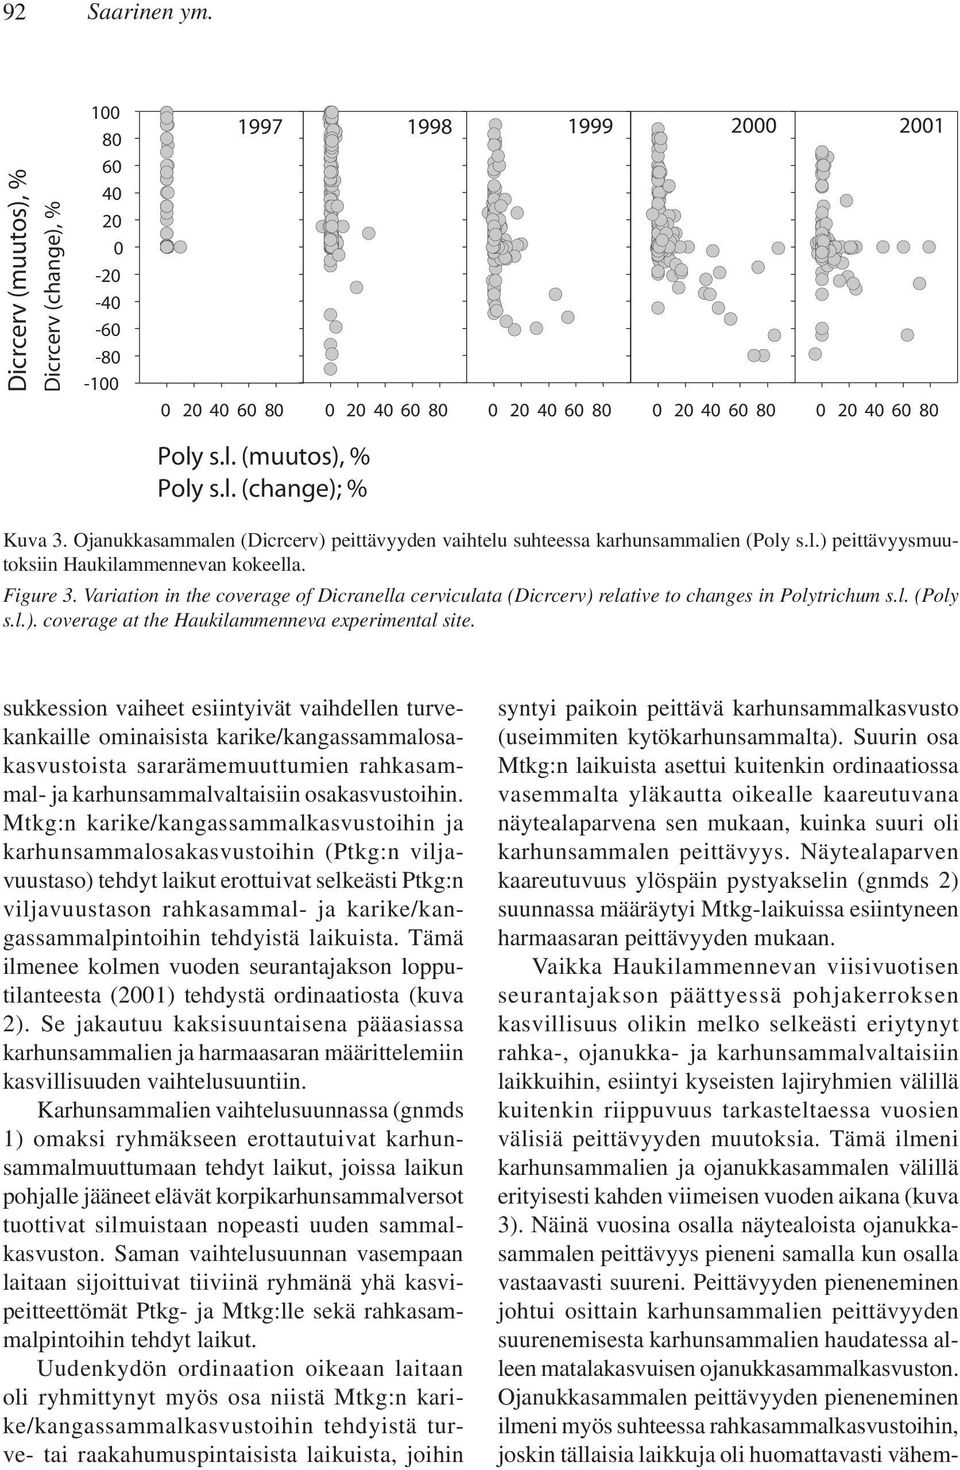 Variation in the coverage of Dicranella cerviculata (Dicrcerv) relative to changes in Polytrichum s.l. (Poly s.l.). coverage at the Haukilammenneva experimental site.